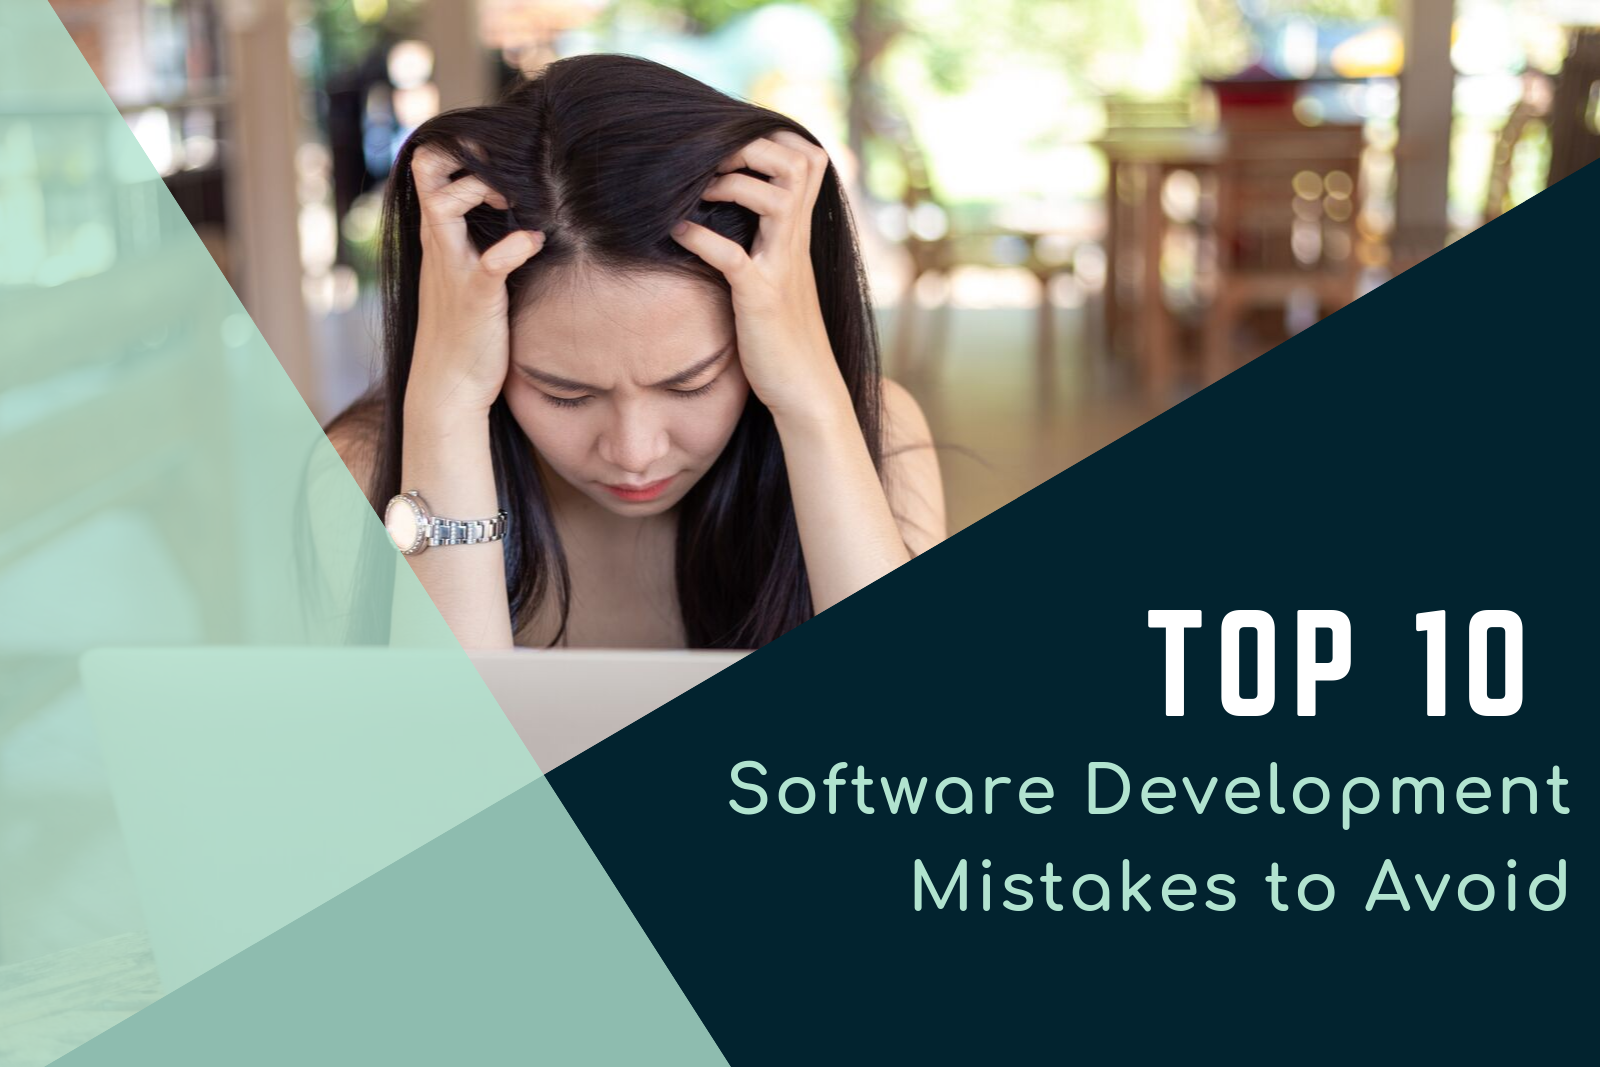 Top 10 Software Development Mistakes to Avoid